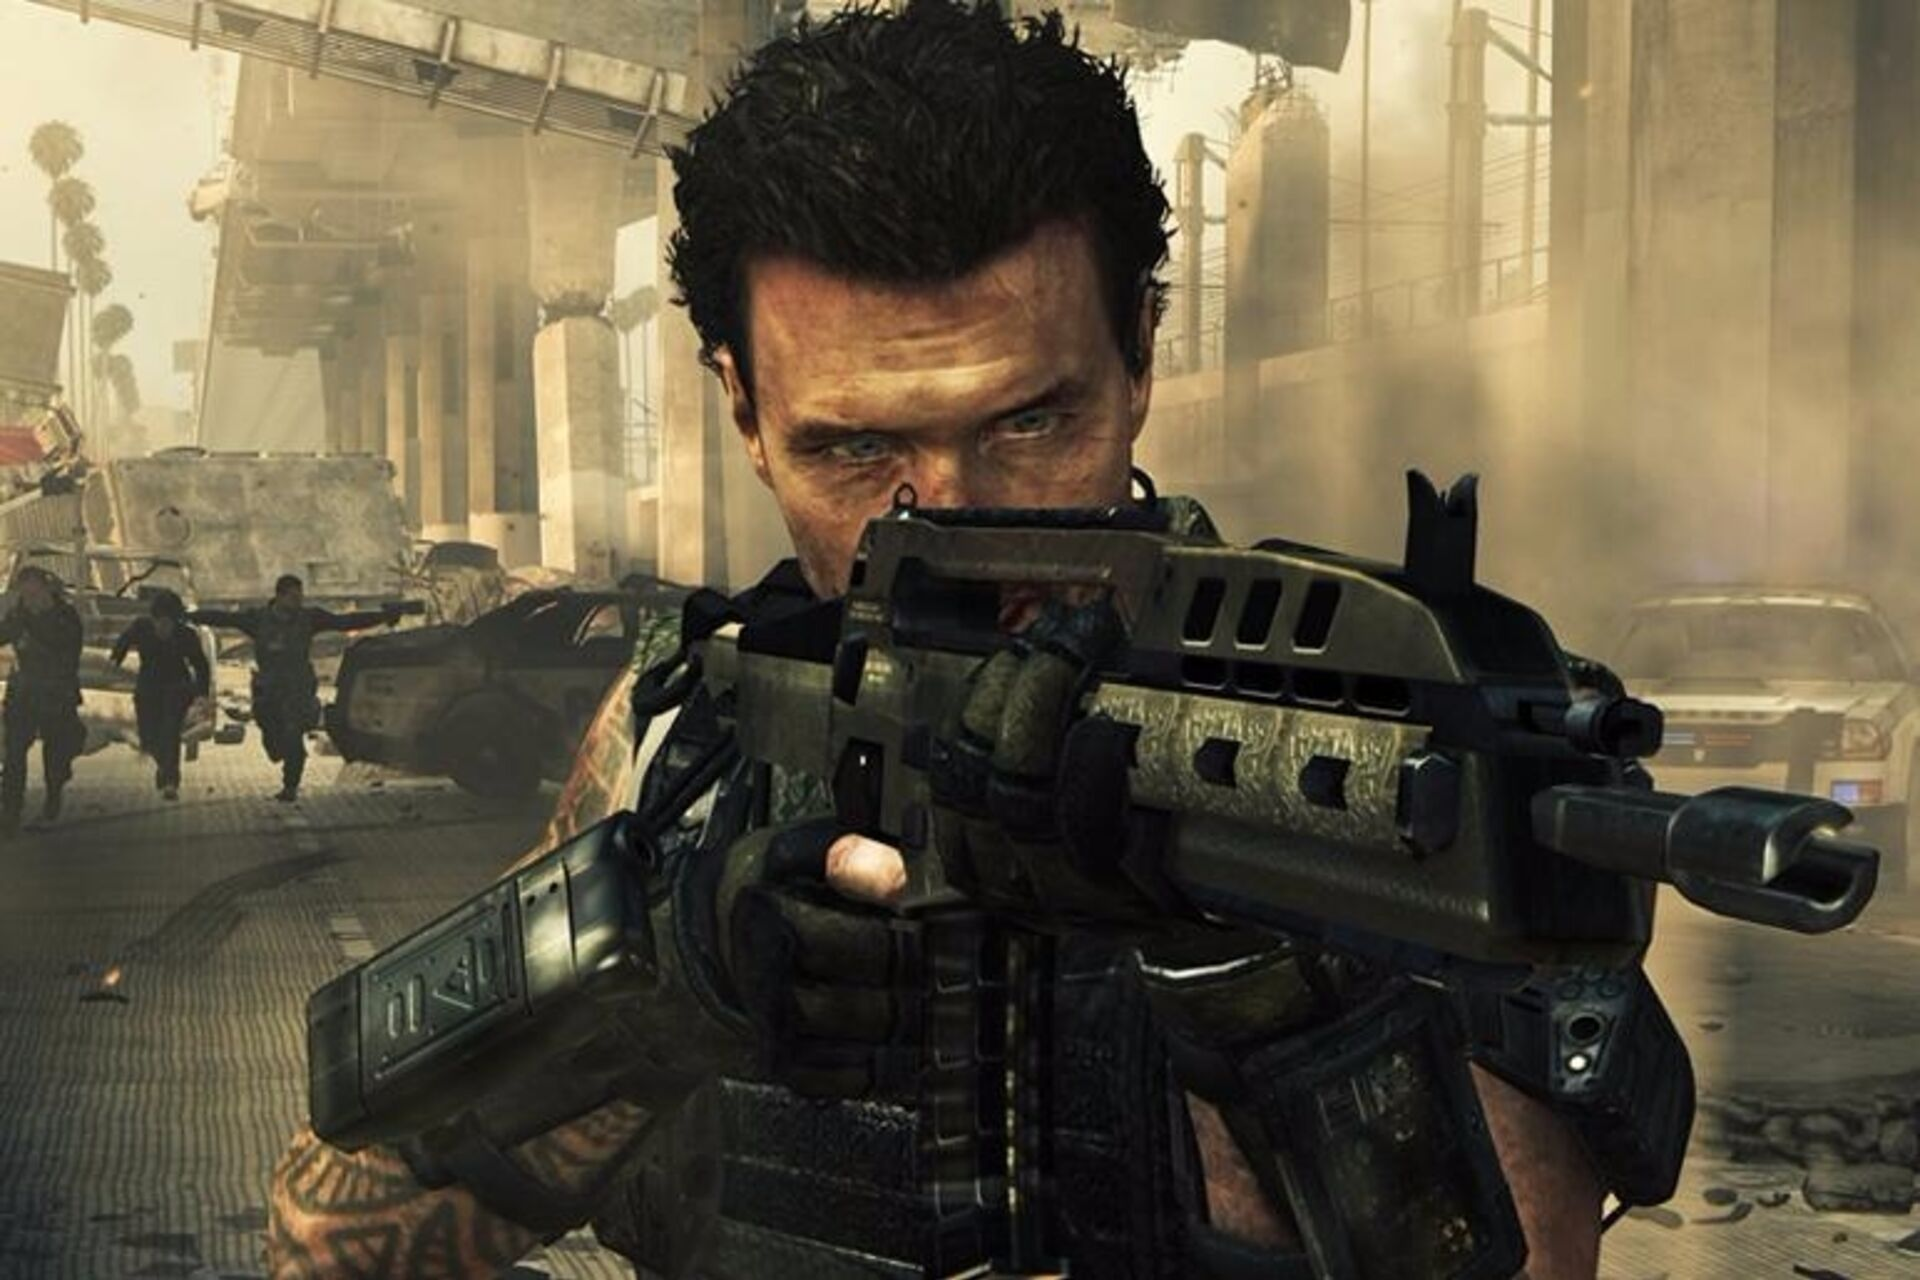 Why the pros think Black Ops 2 is still the best Call of